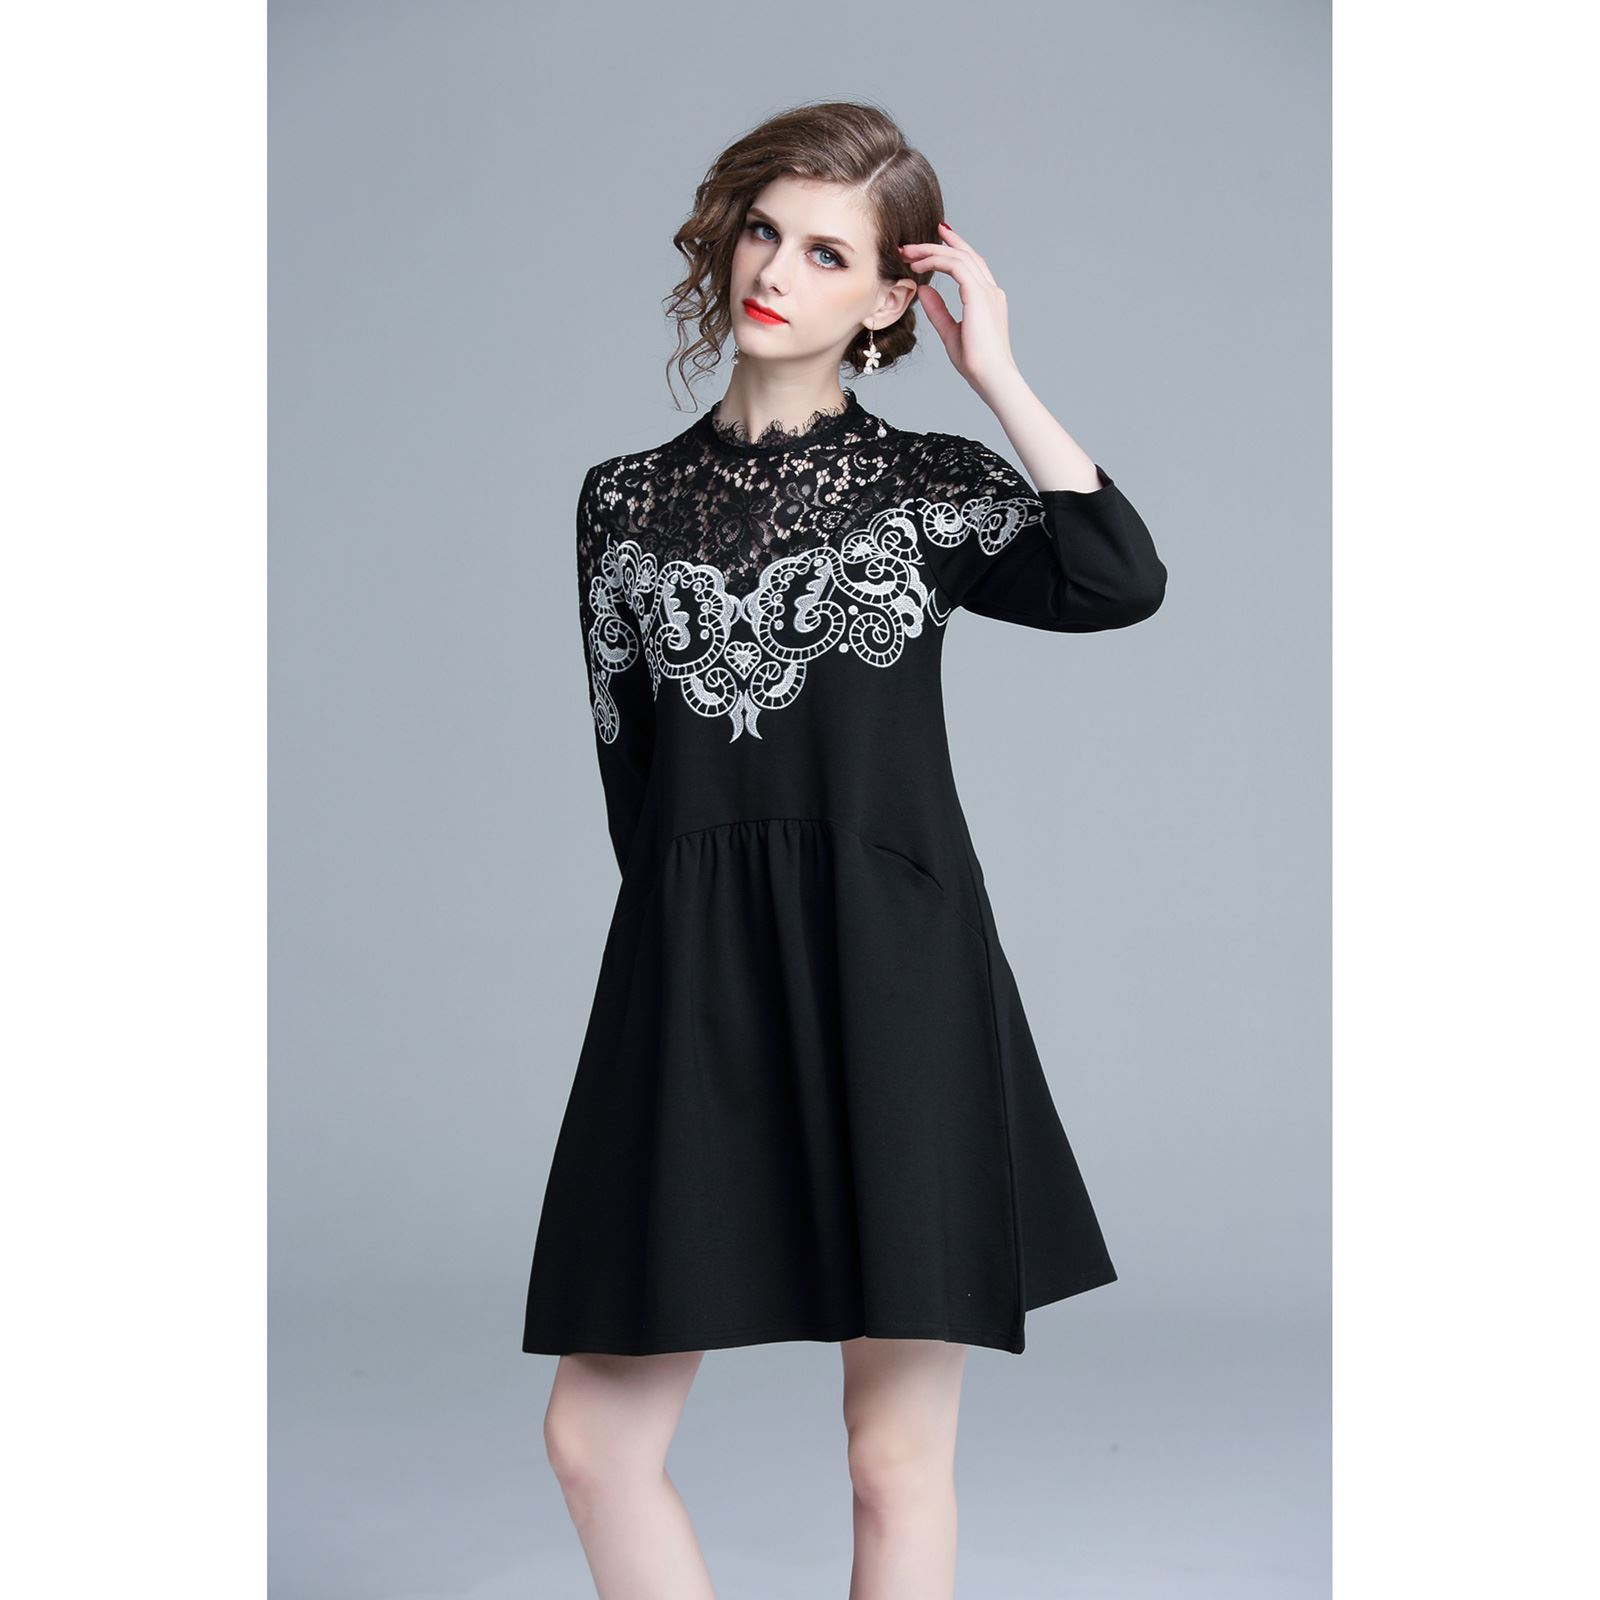 Robe Trap Trap Robe Dza Robe Dza Trap Dza Dza Robe IED29WH